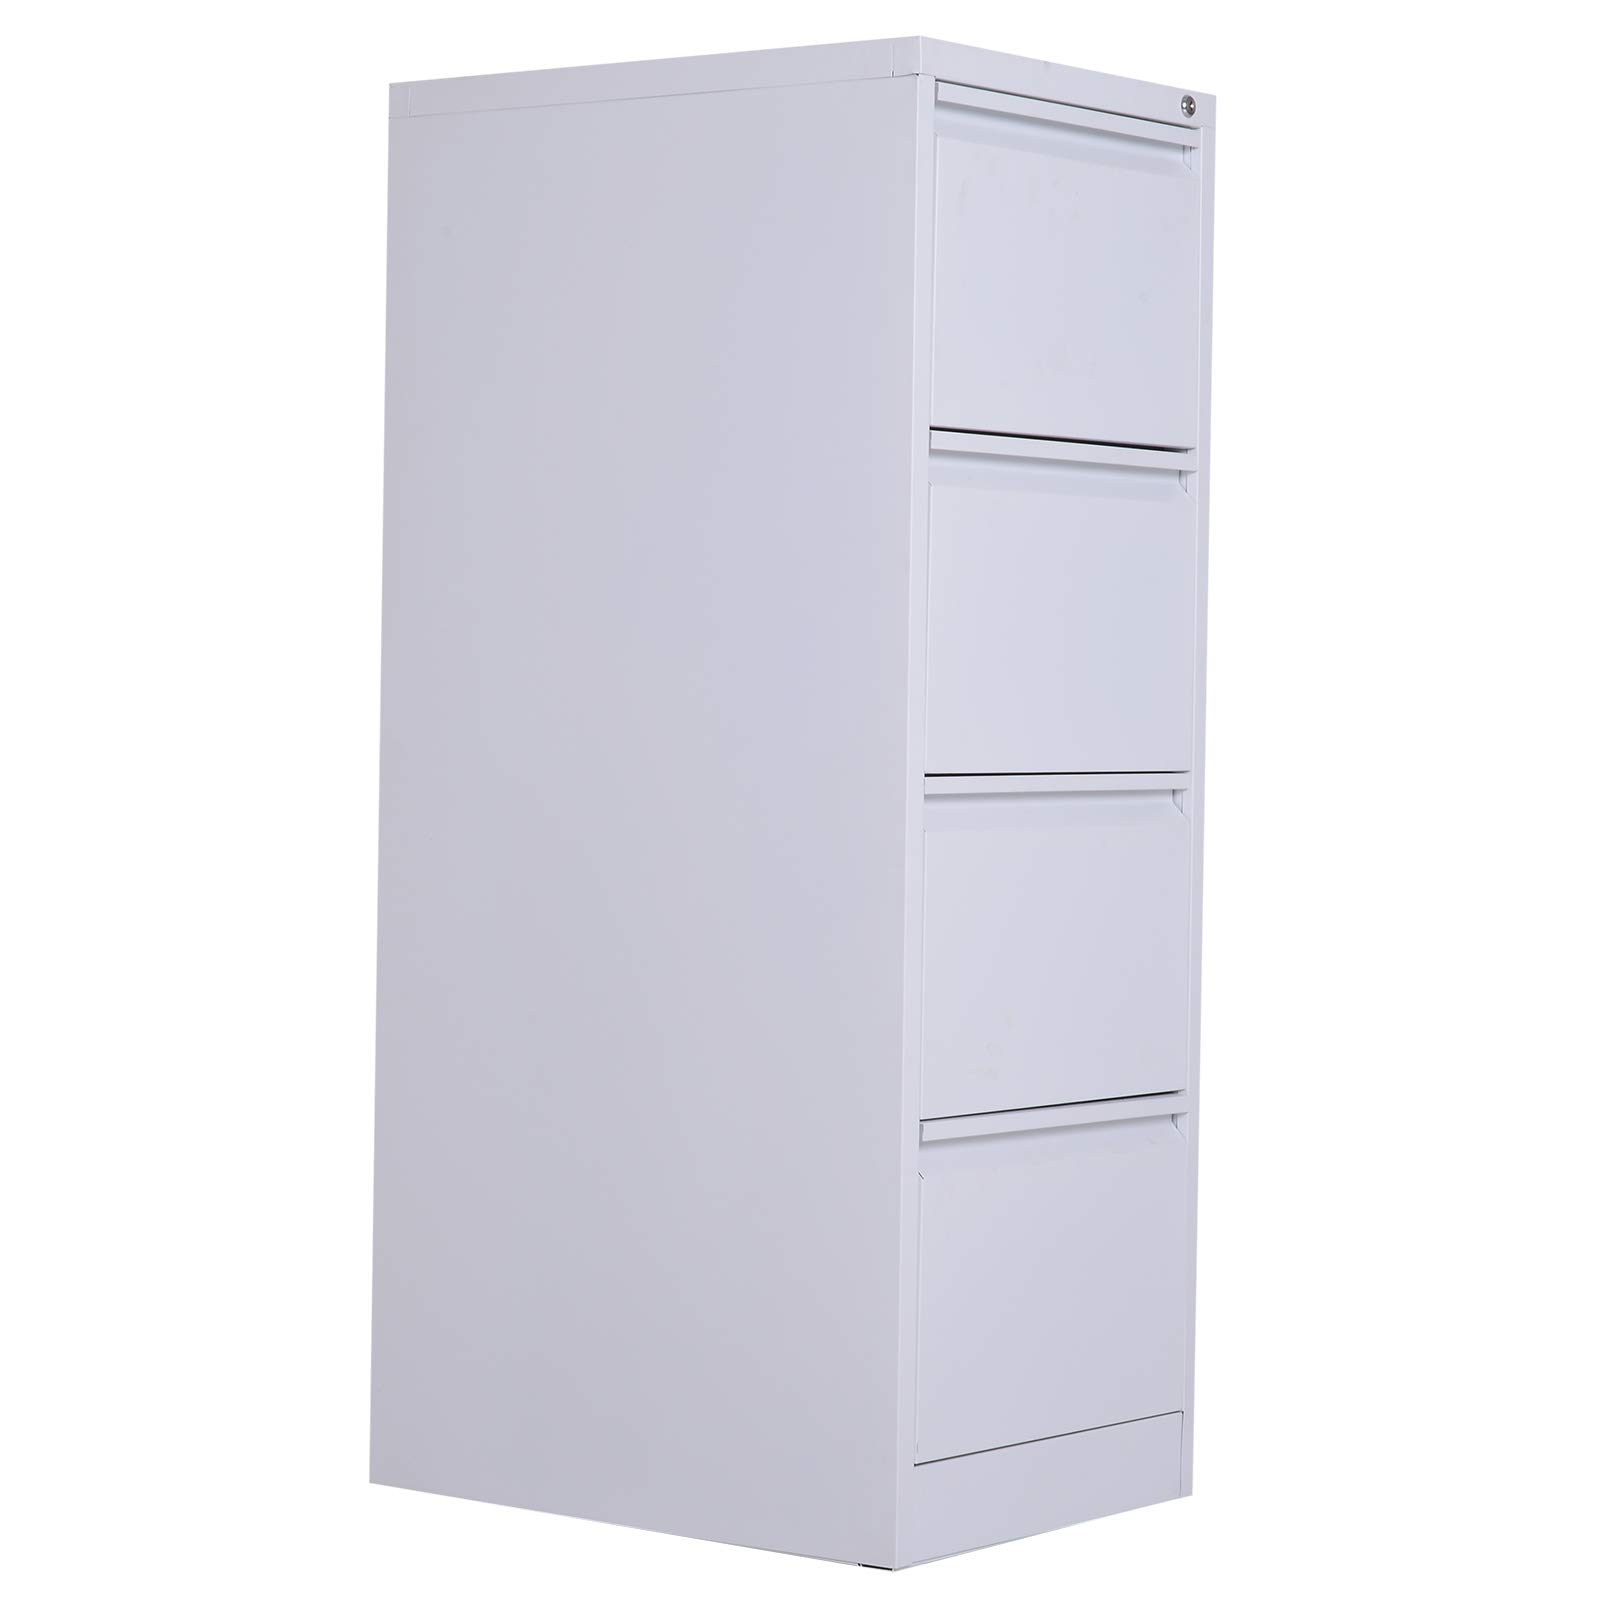 Vinsetto Metal 4 Drawer Vertical Locking Filing Cabinet - White by Vinsetto